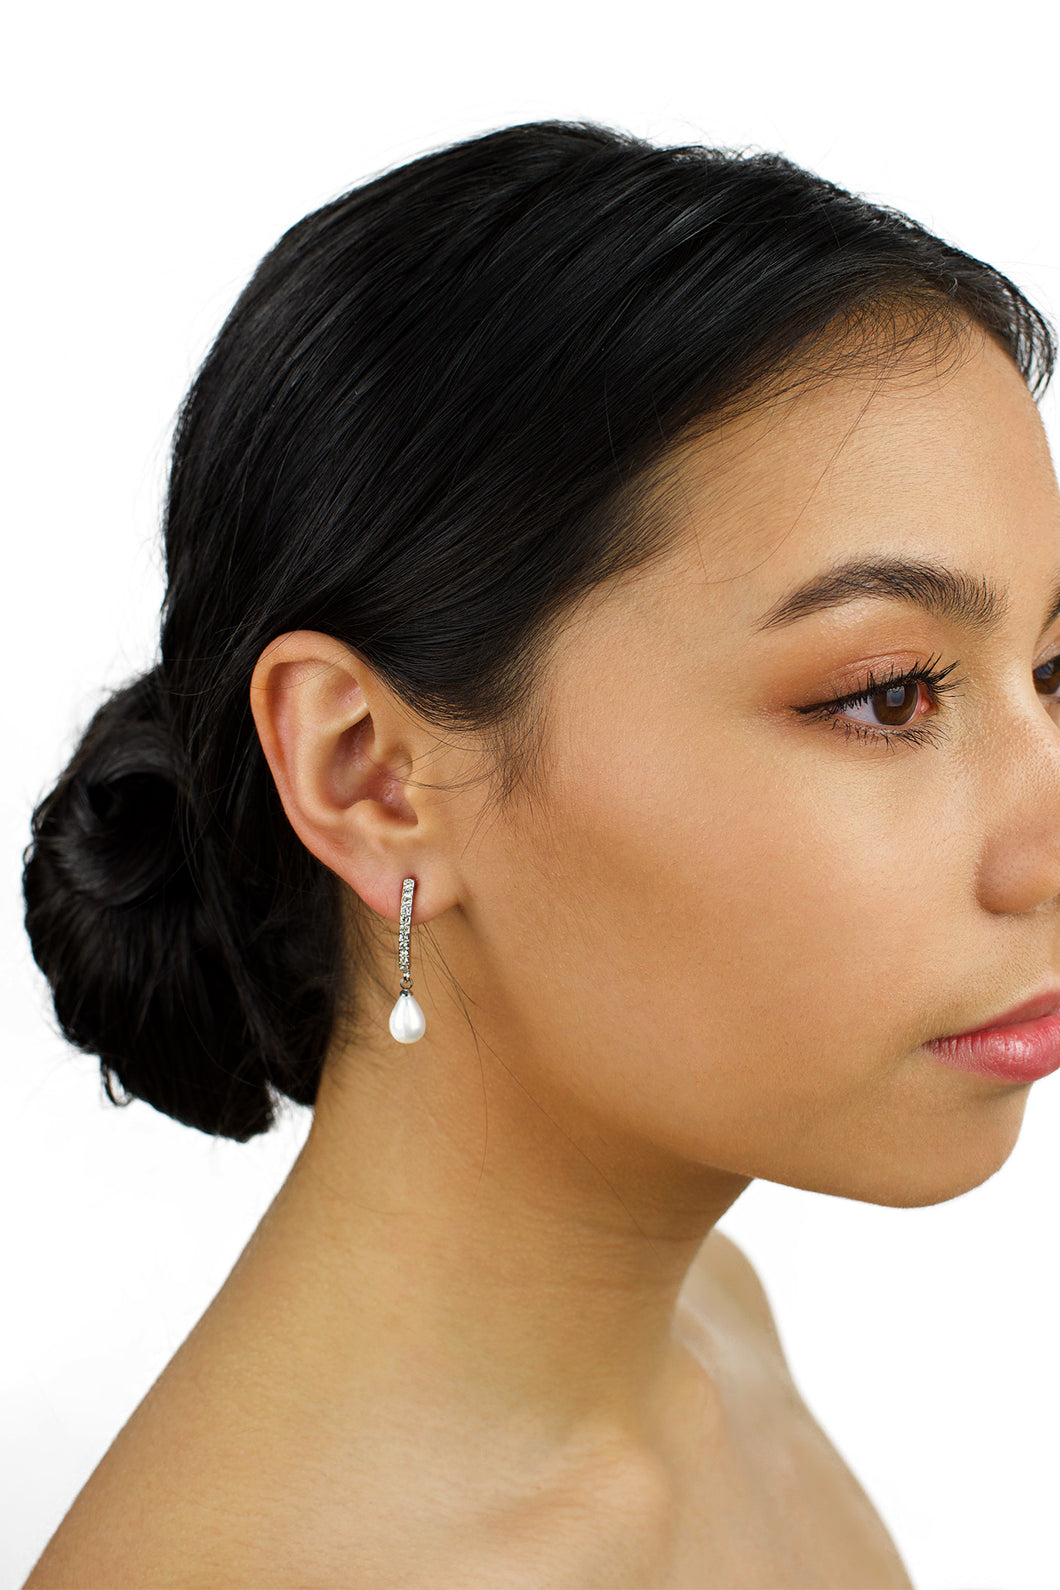 long pearl earring worn by a dark hair bridal model